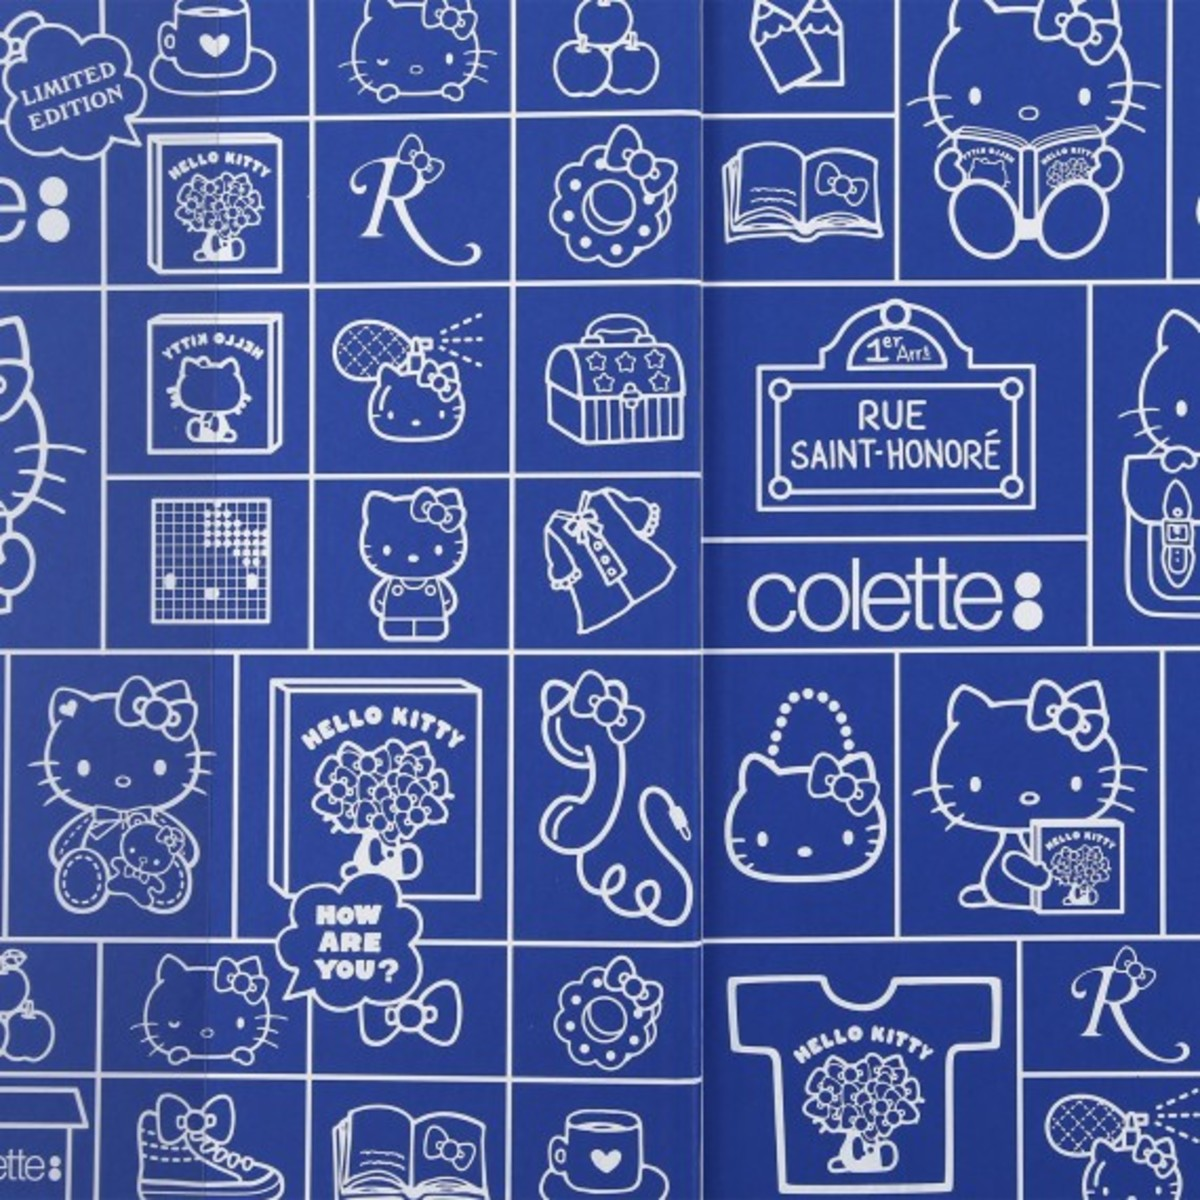 hello-kitty-collaborations-book-colette-edition-07